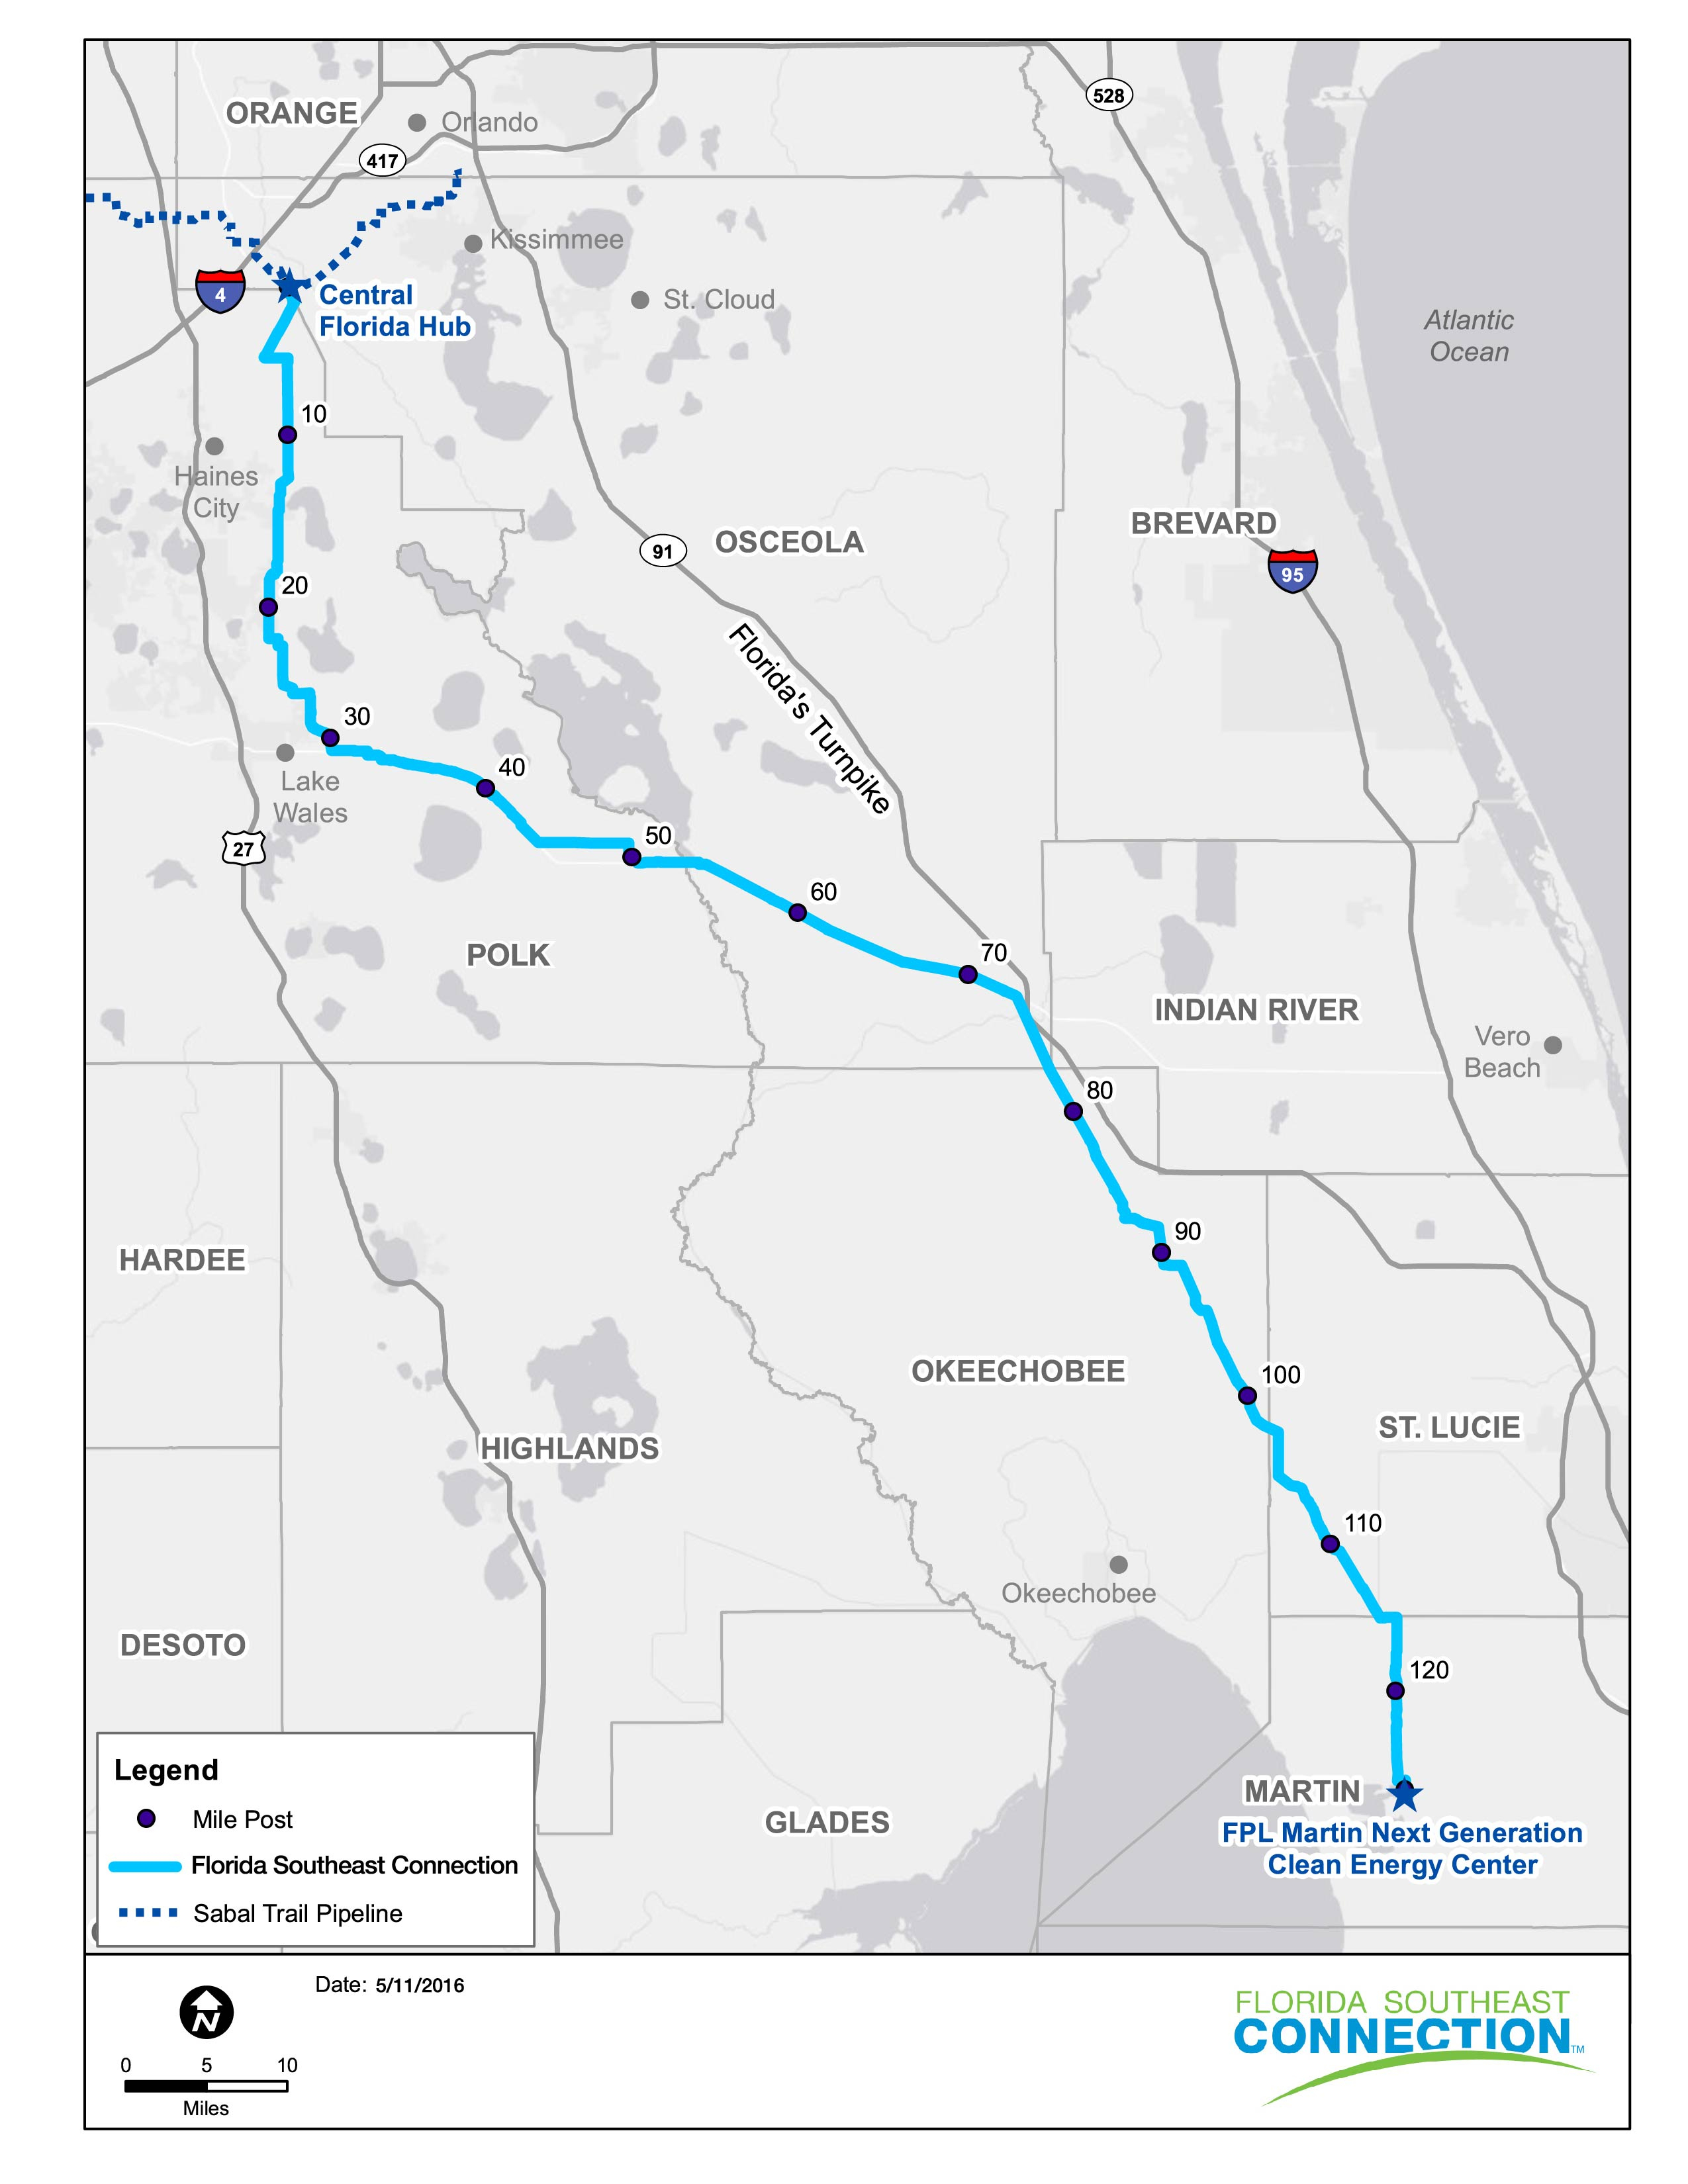 Sabal Trail, Florida Se Connection Gas Pipelines Up And Running - Gas Availability Map Florida